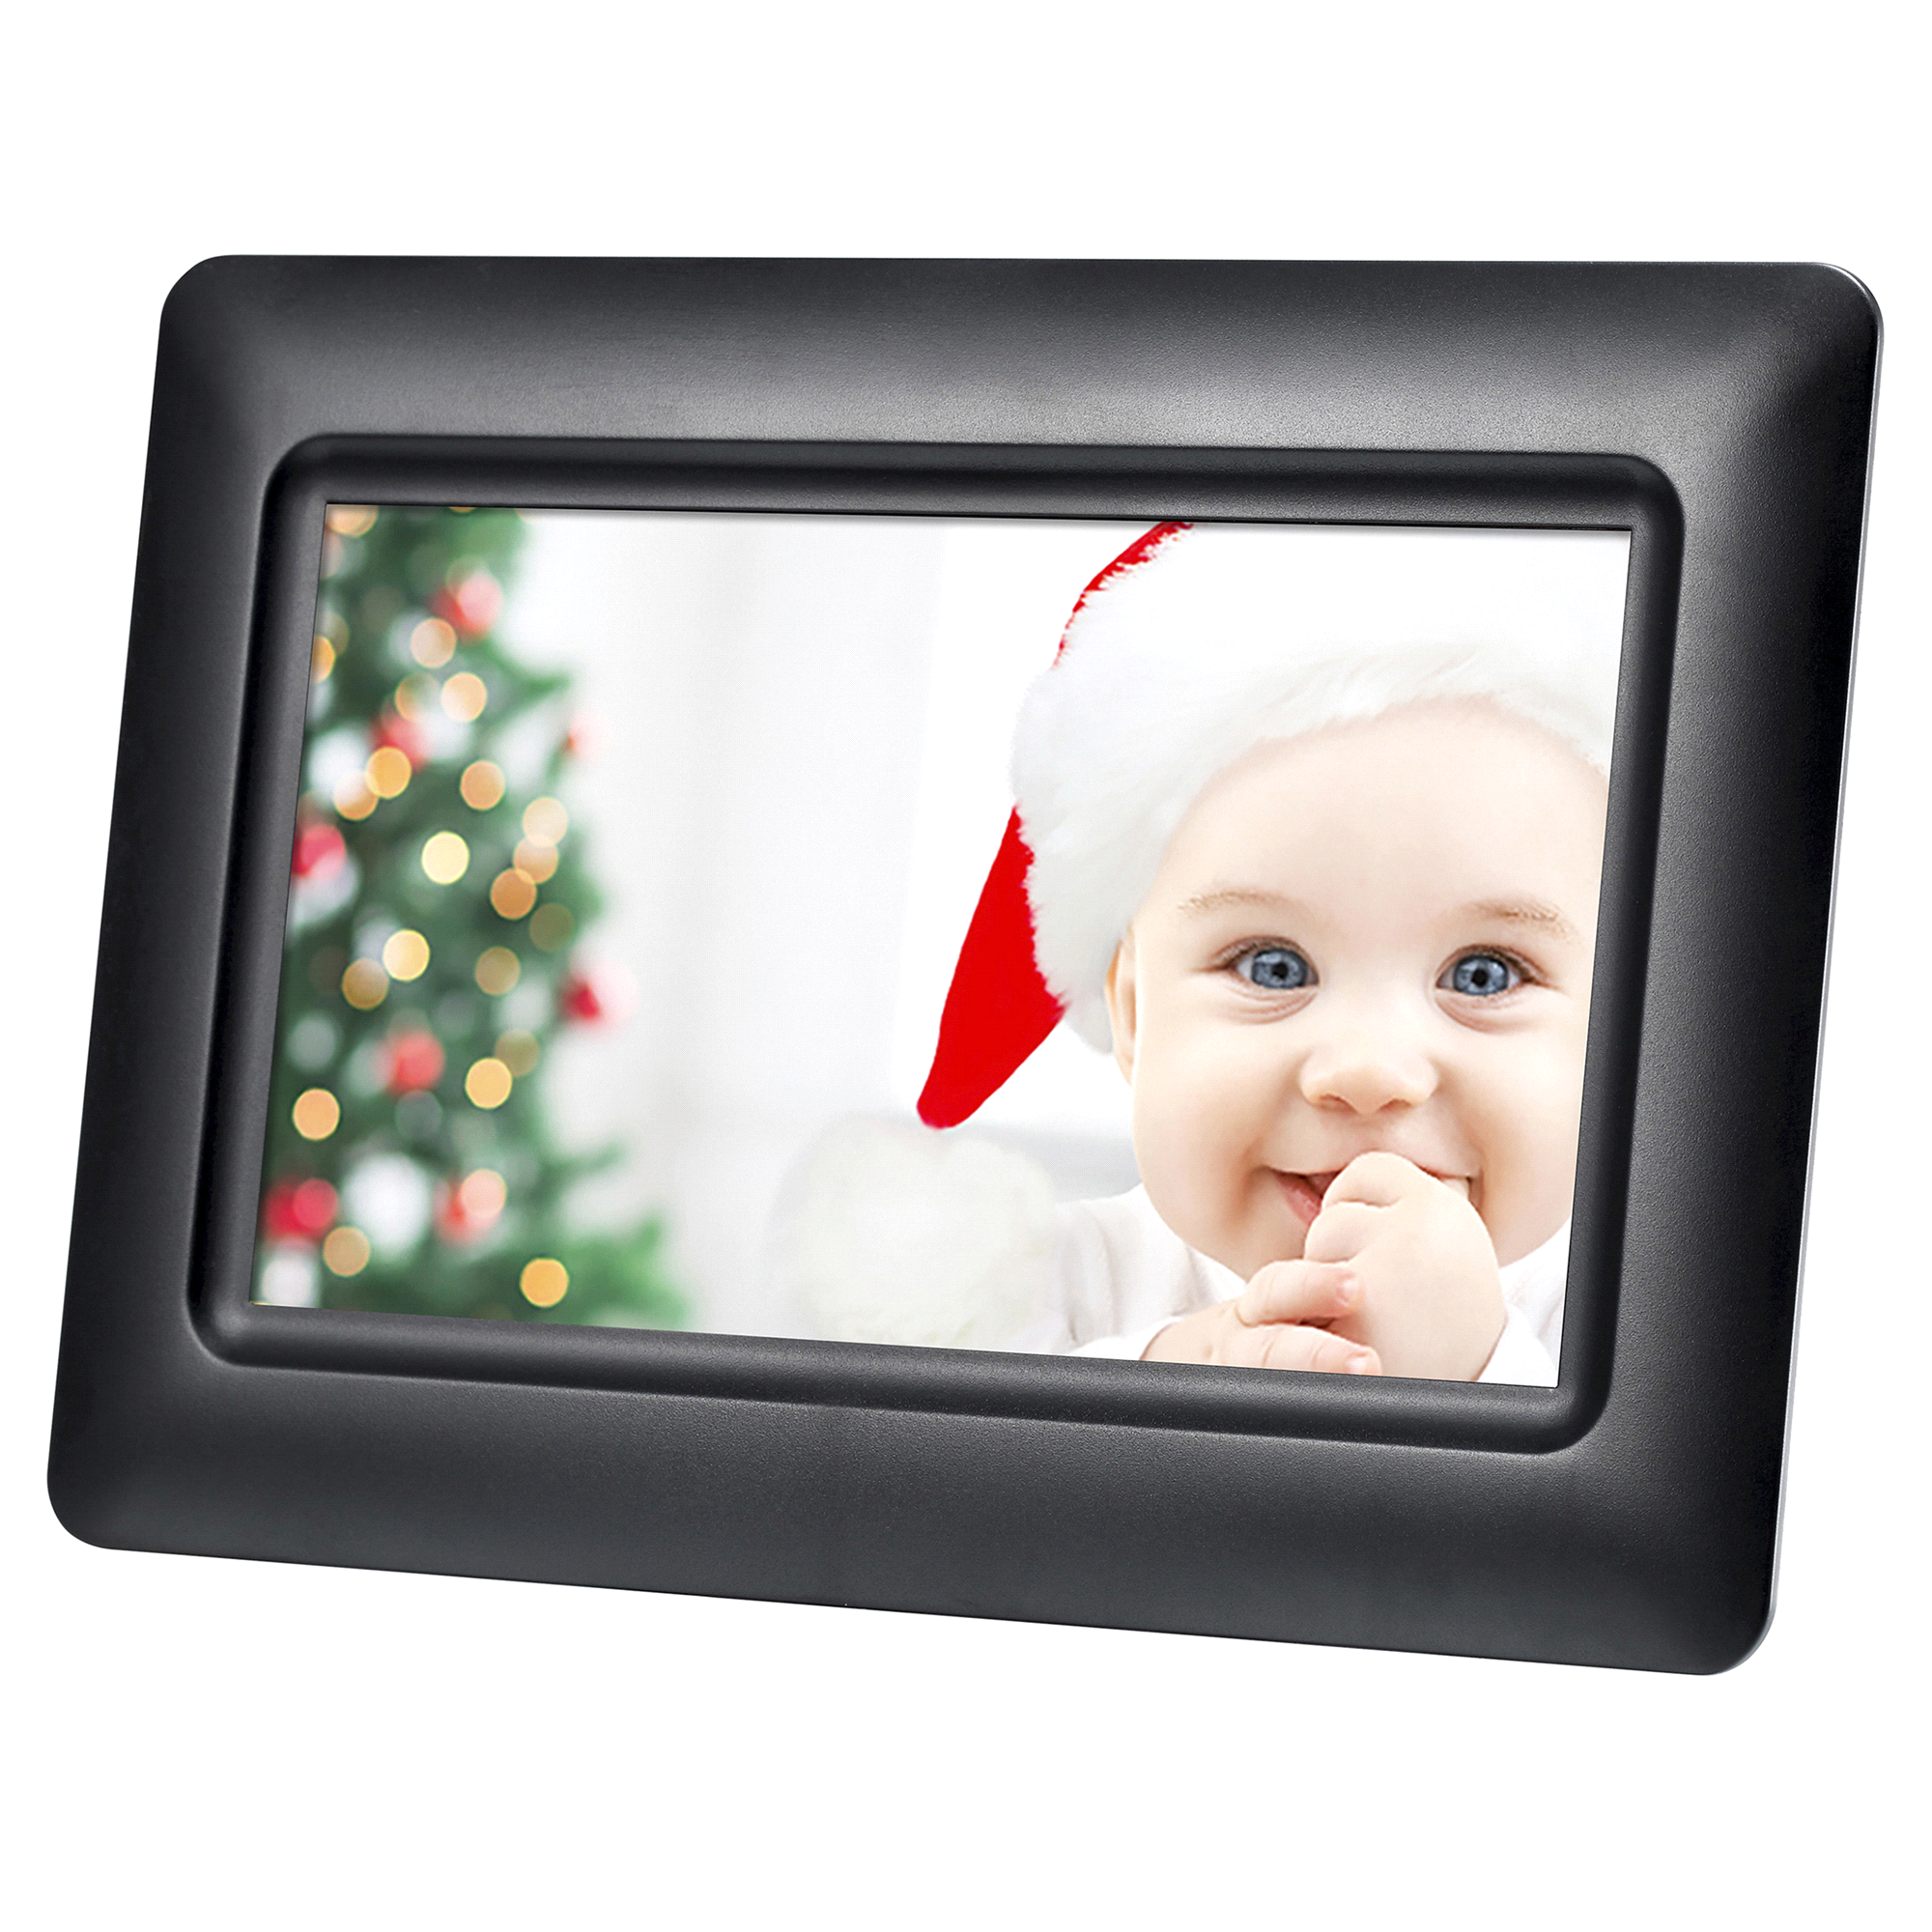 Polaroid 7 inch Digital Photo Frame | Meijer.com